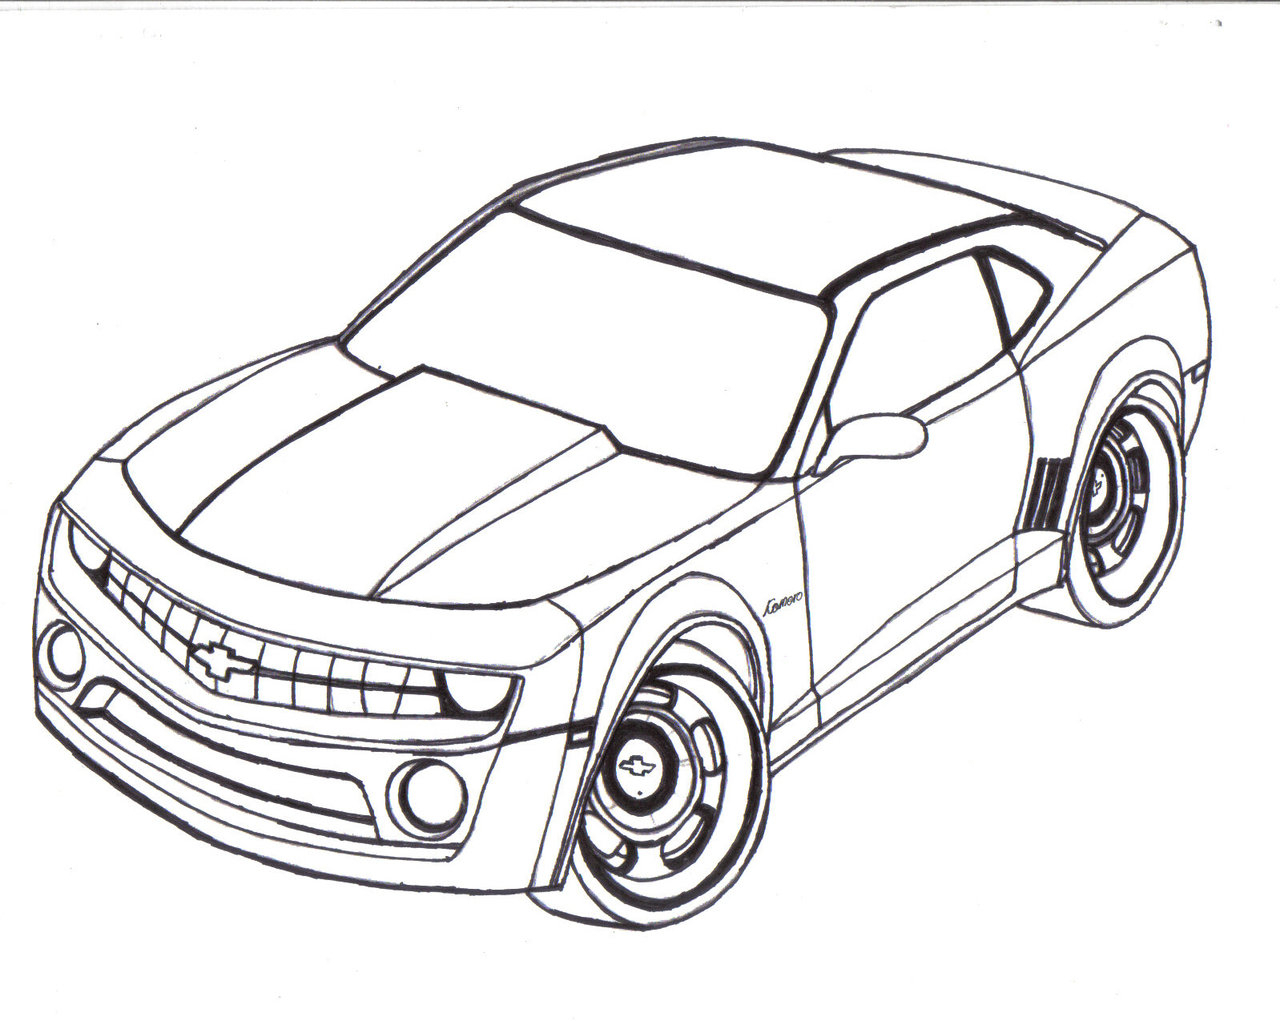 Crashed Car Drawing at GetDrawings.com | Free for personal use ...